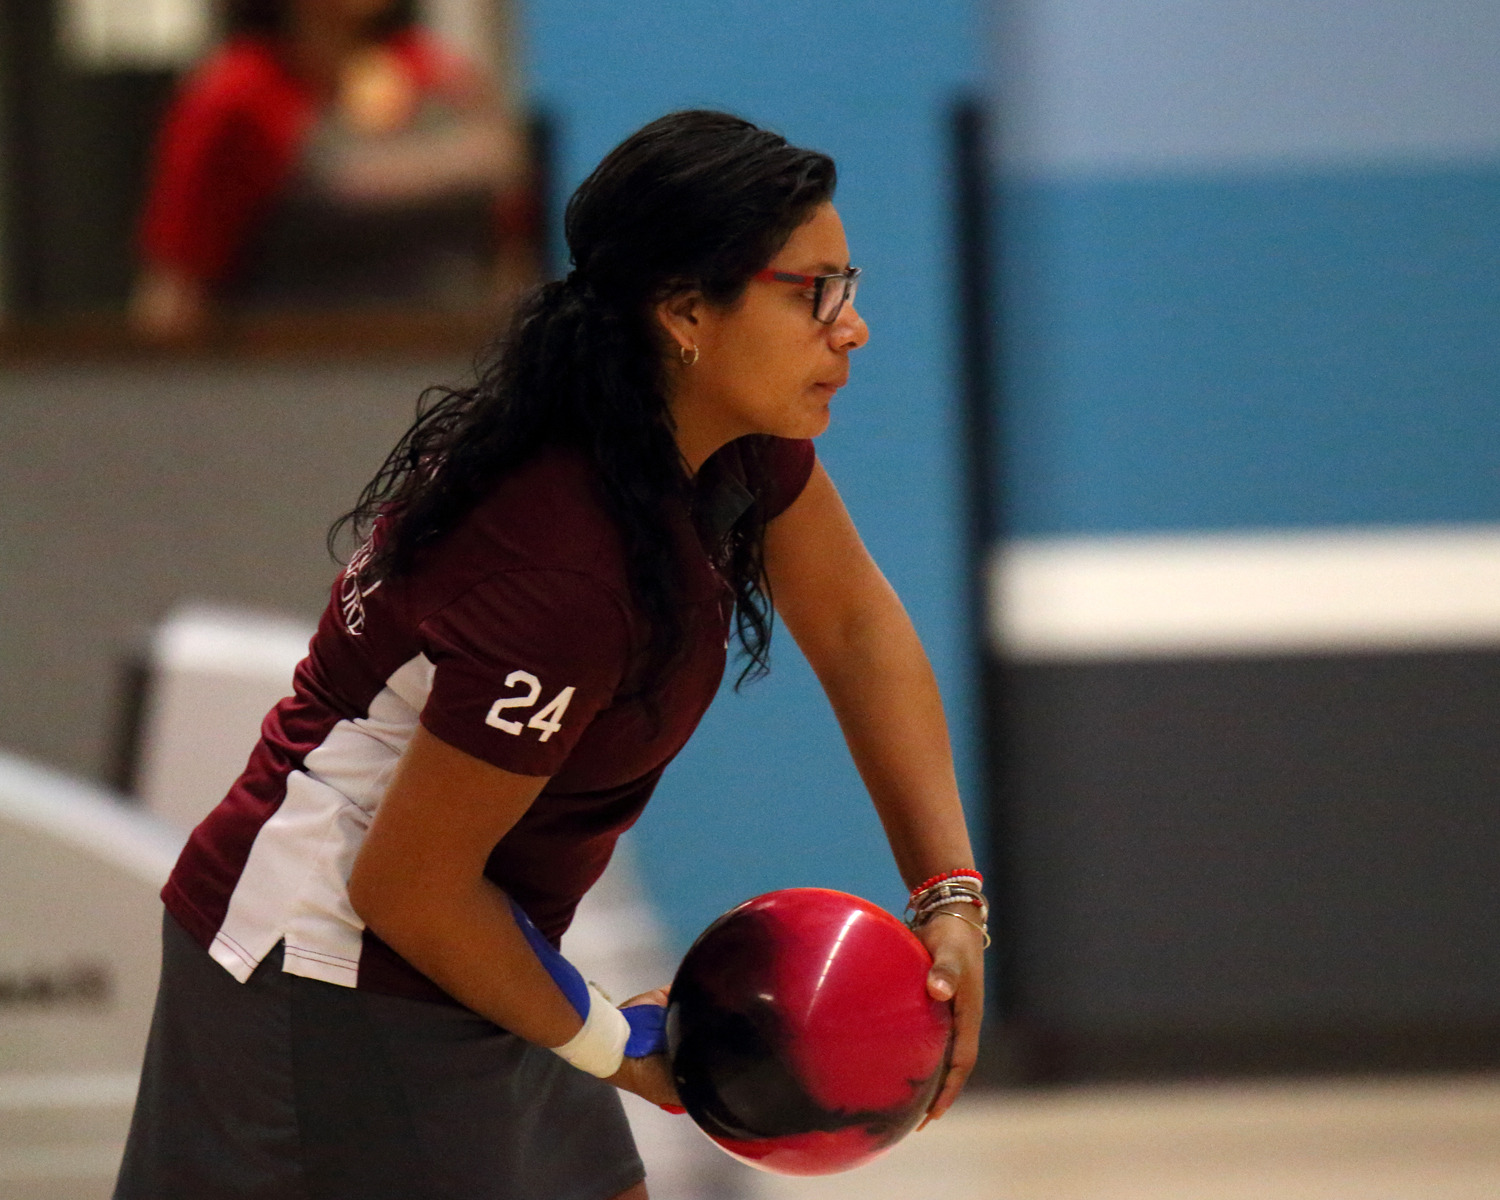 Seraus Named Finalist For IBMA Bowler of the Year (Courtesy: UMES)